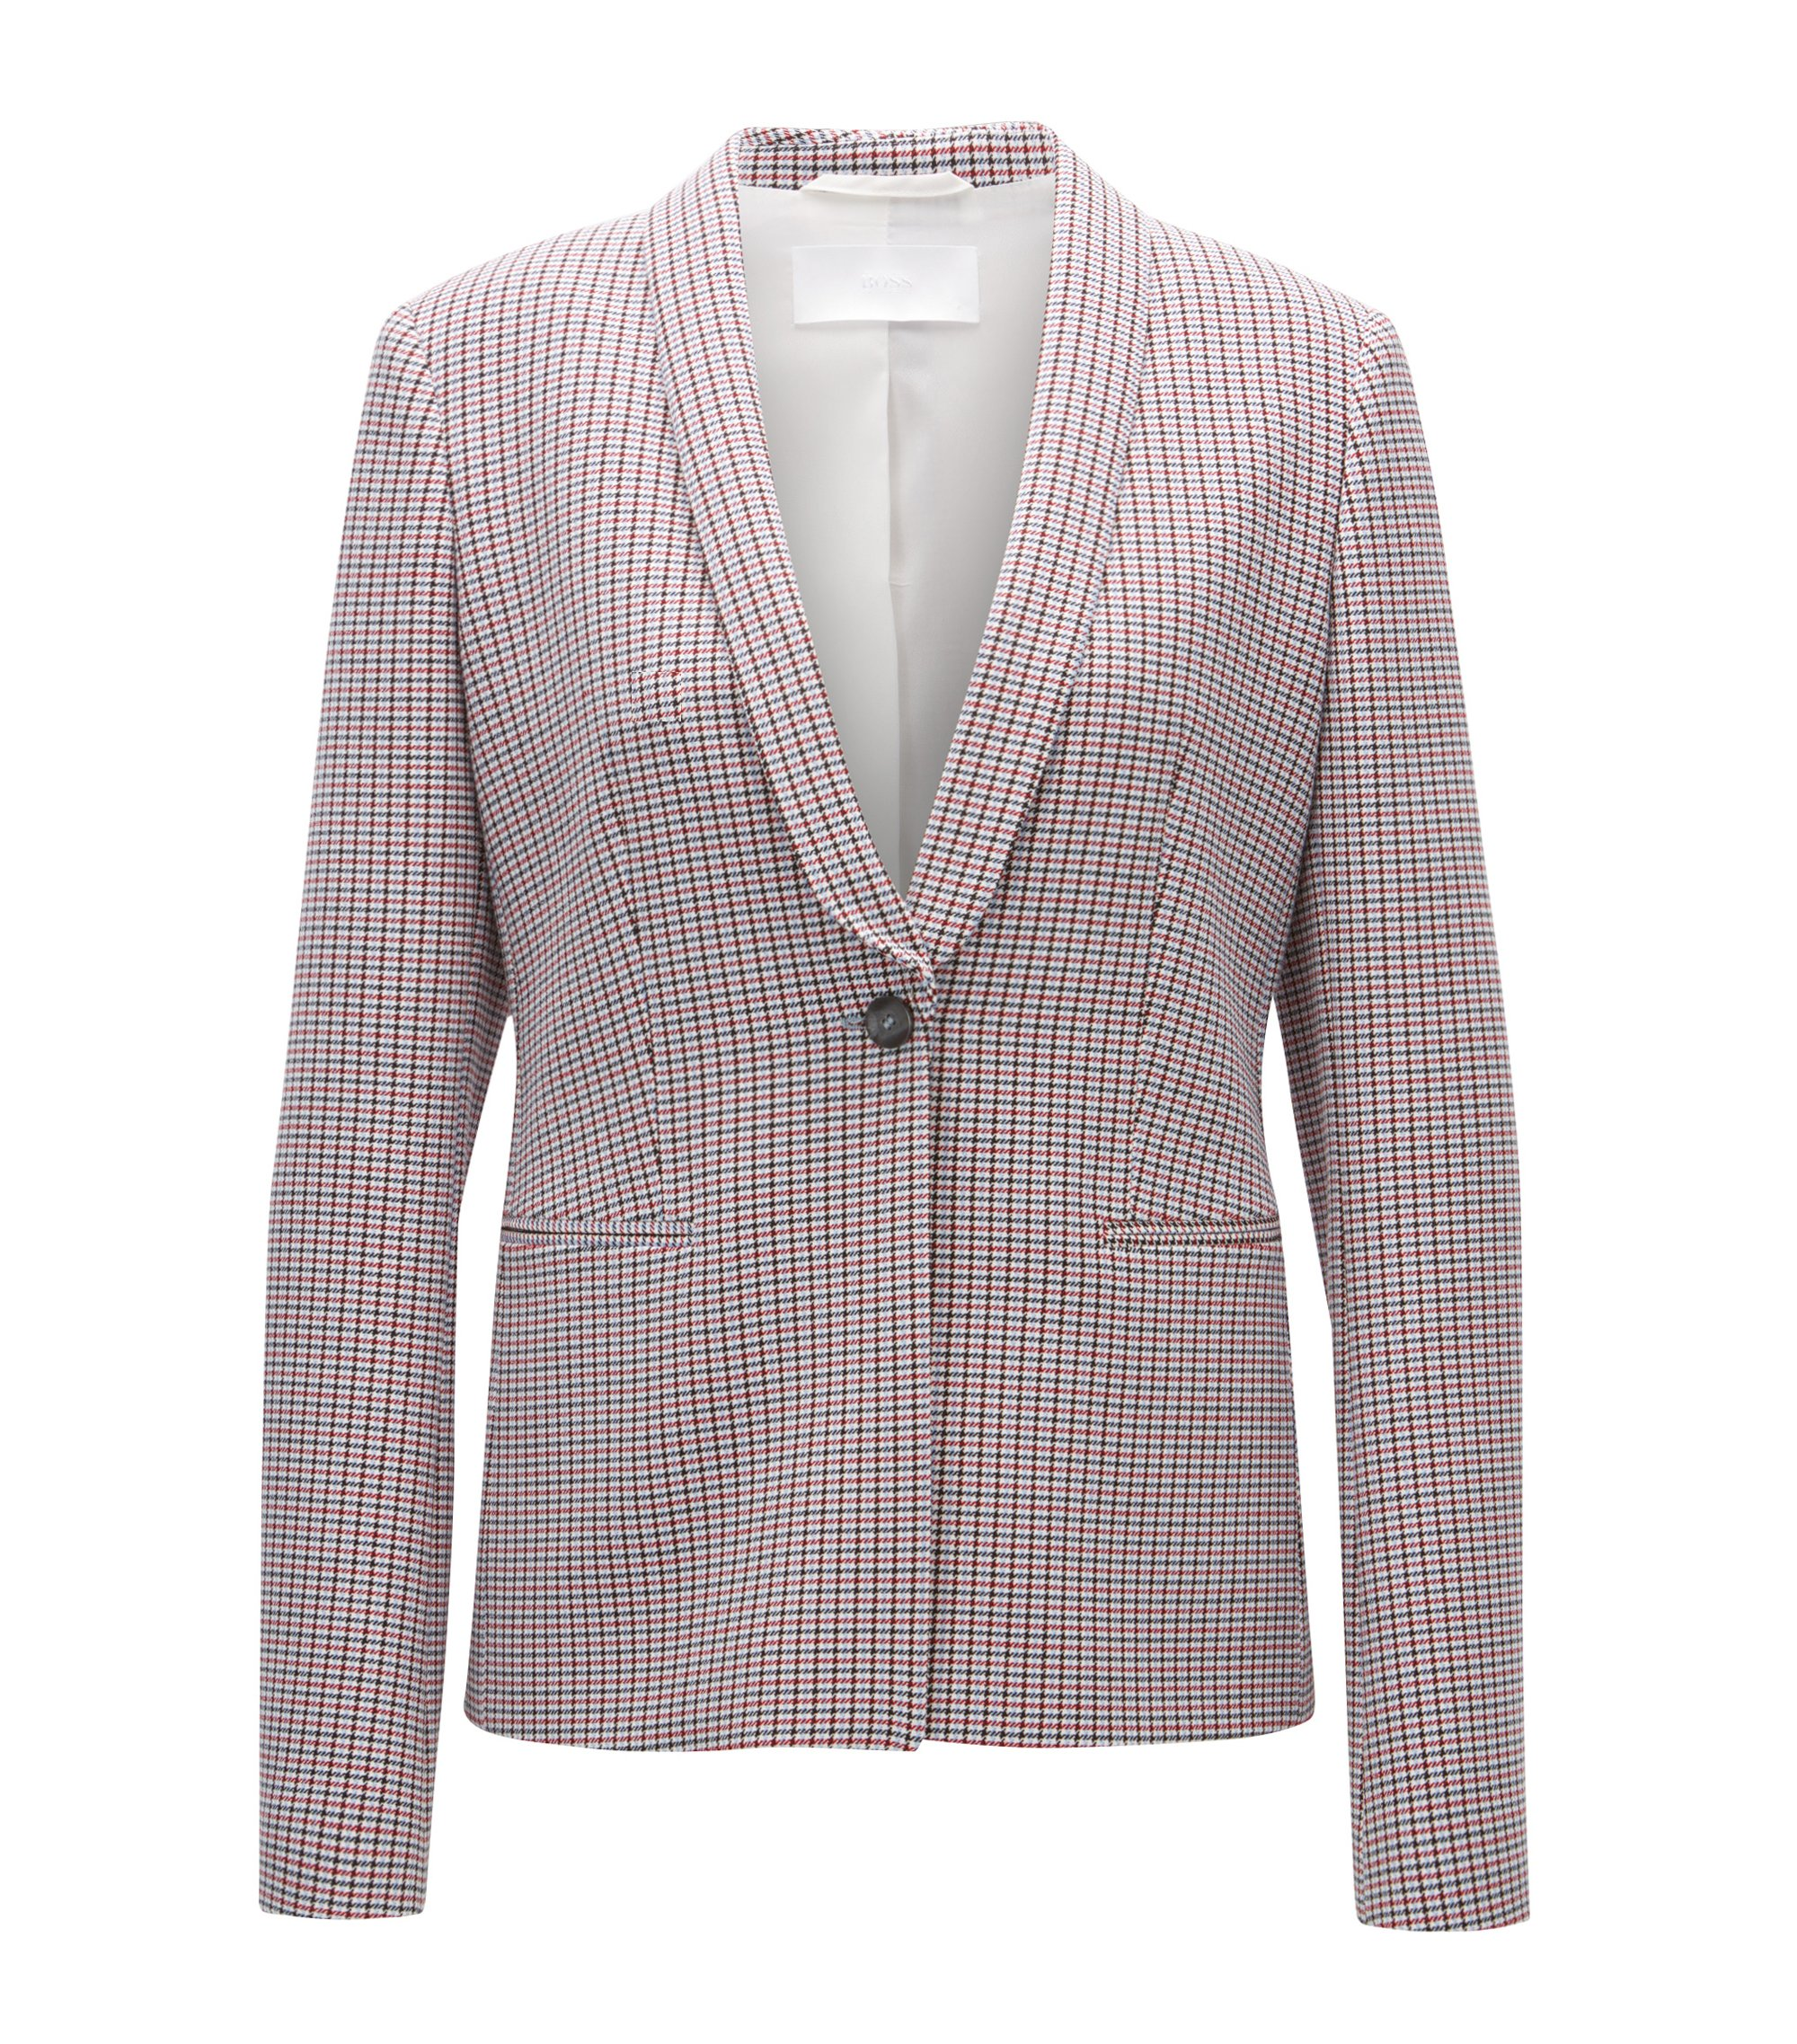 Regular-fit jacket in double-faced fabric, Patterned